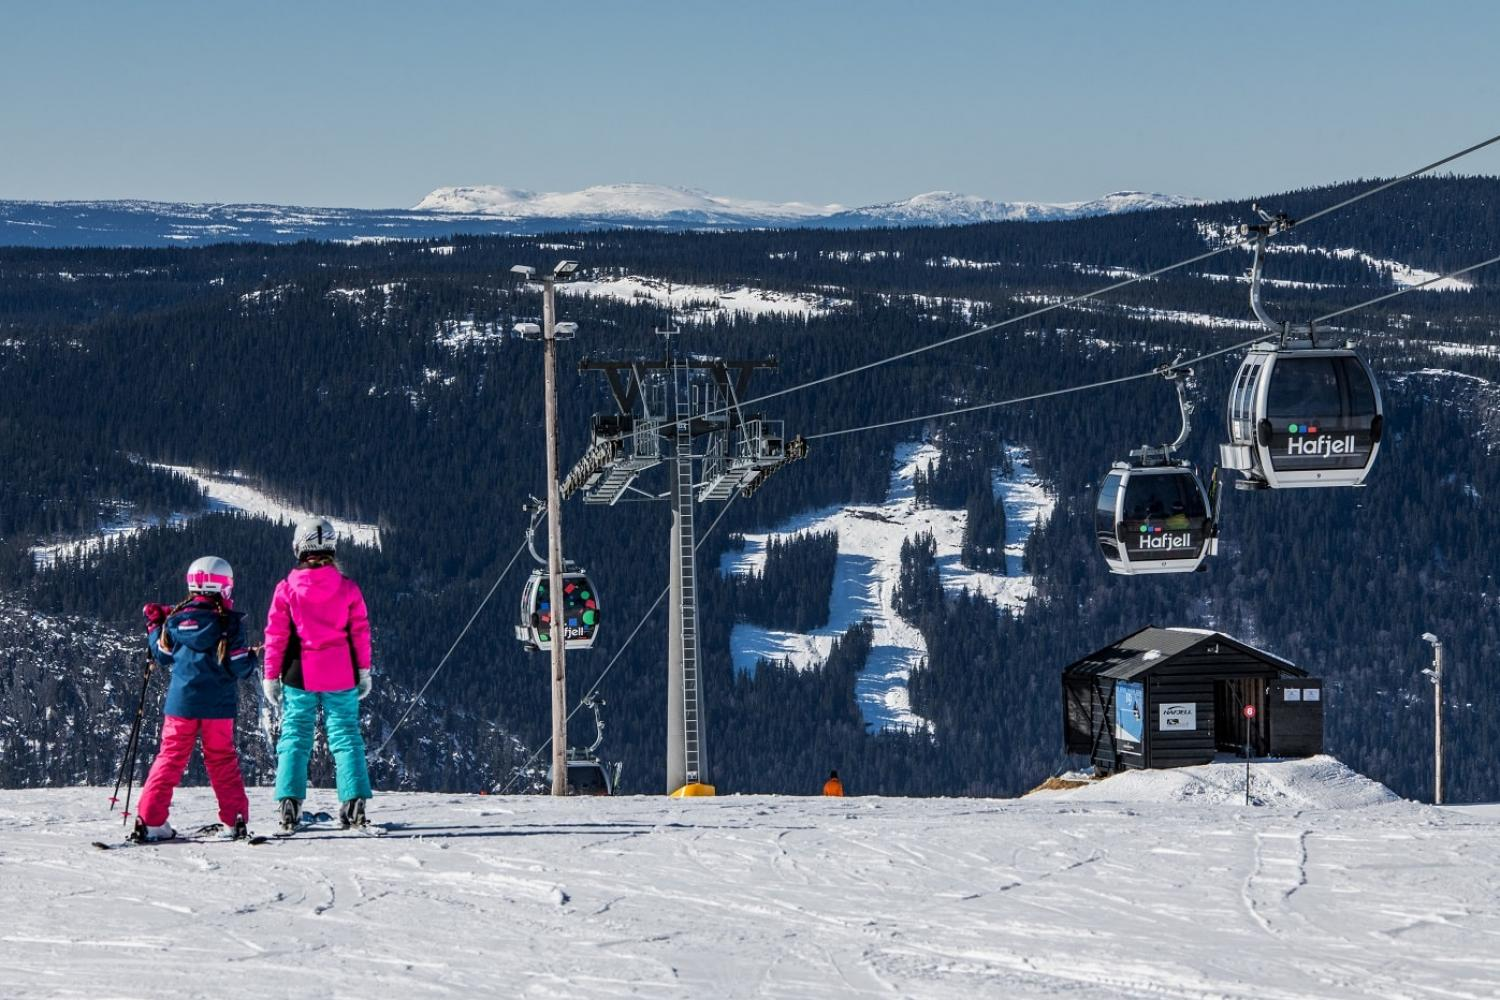 Hafjell ski slopes